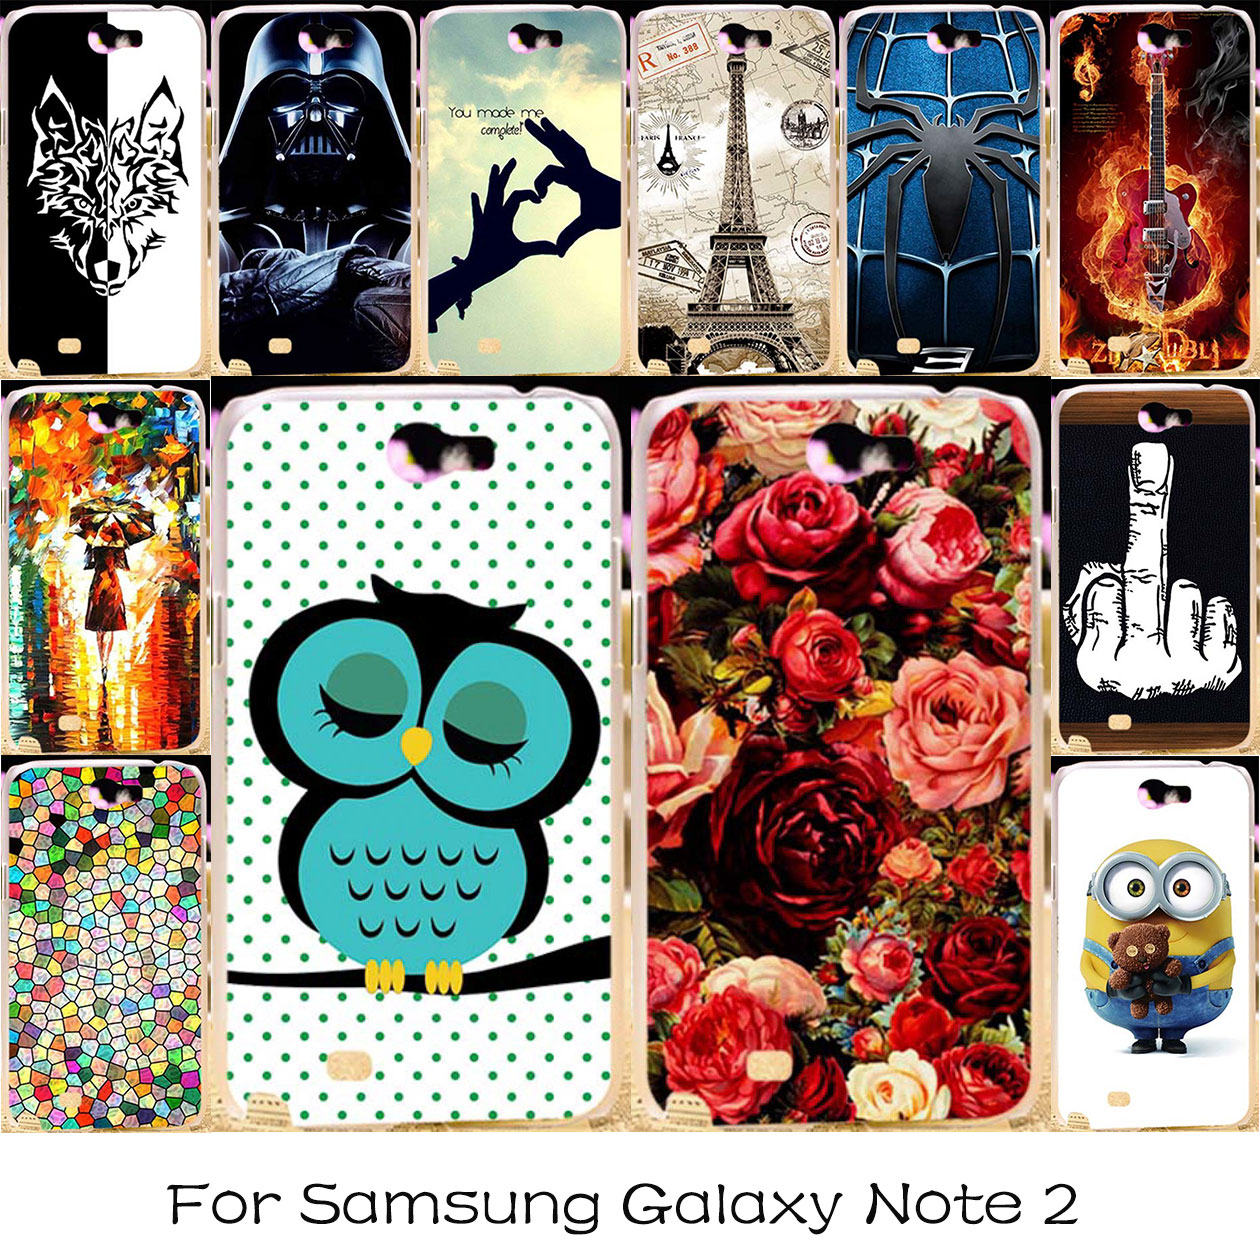 TAOYUNXI Phone Case For Samsung Galaxy Note 2 II N7100 Housing Cover N7105 Note2 7100 NoteII Plastic Bag Shell Skin Cover